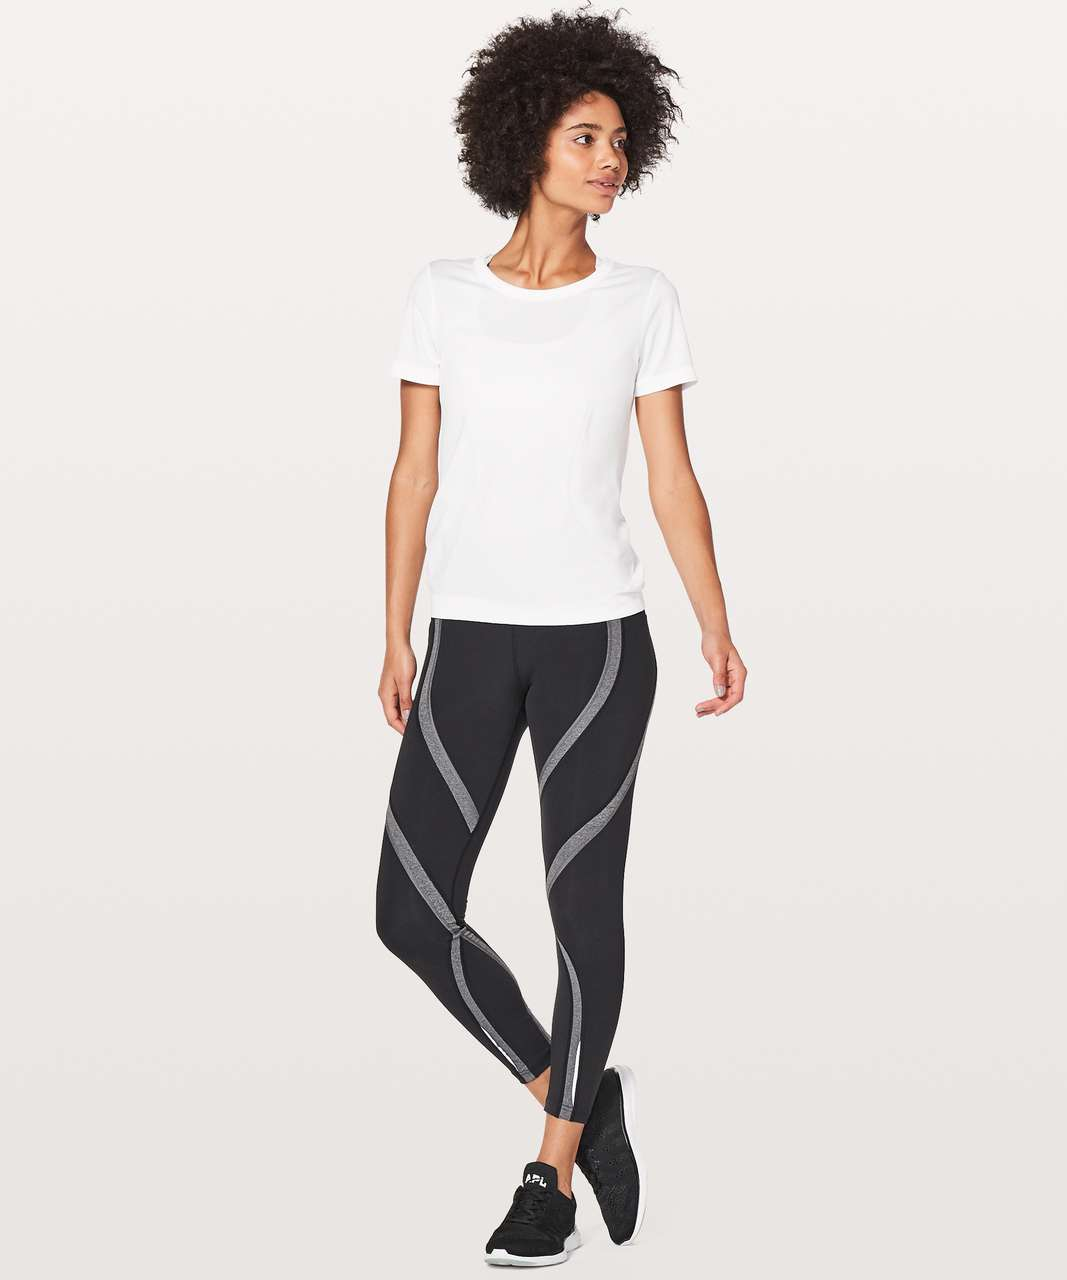 Lululemon Swiftly Tech Short Sleeve (Breeze) *Relaxed Fit - White / White